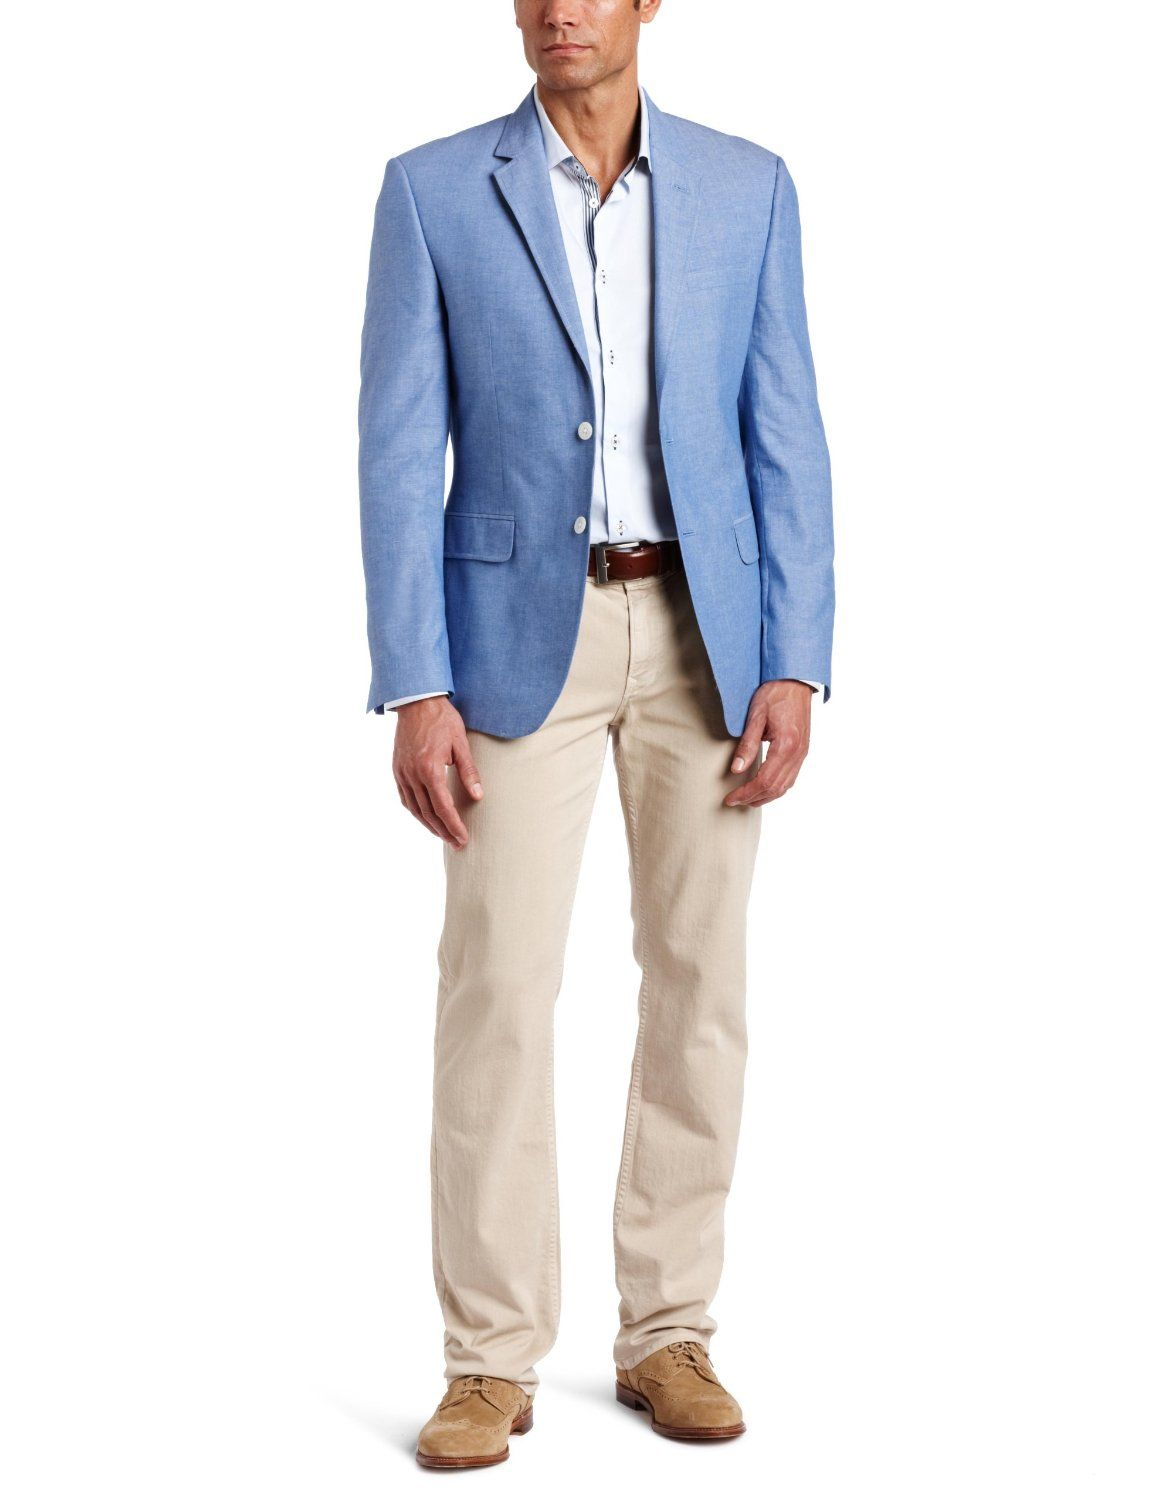 Light Blue Sports Jacket